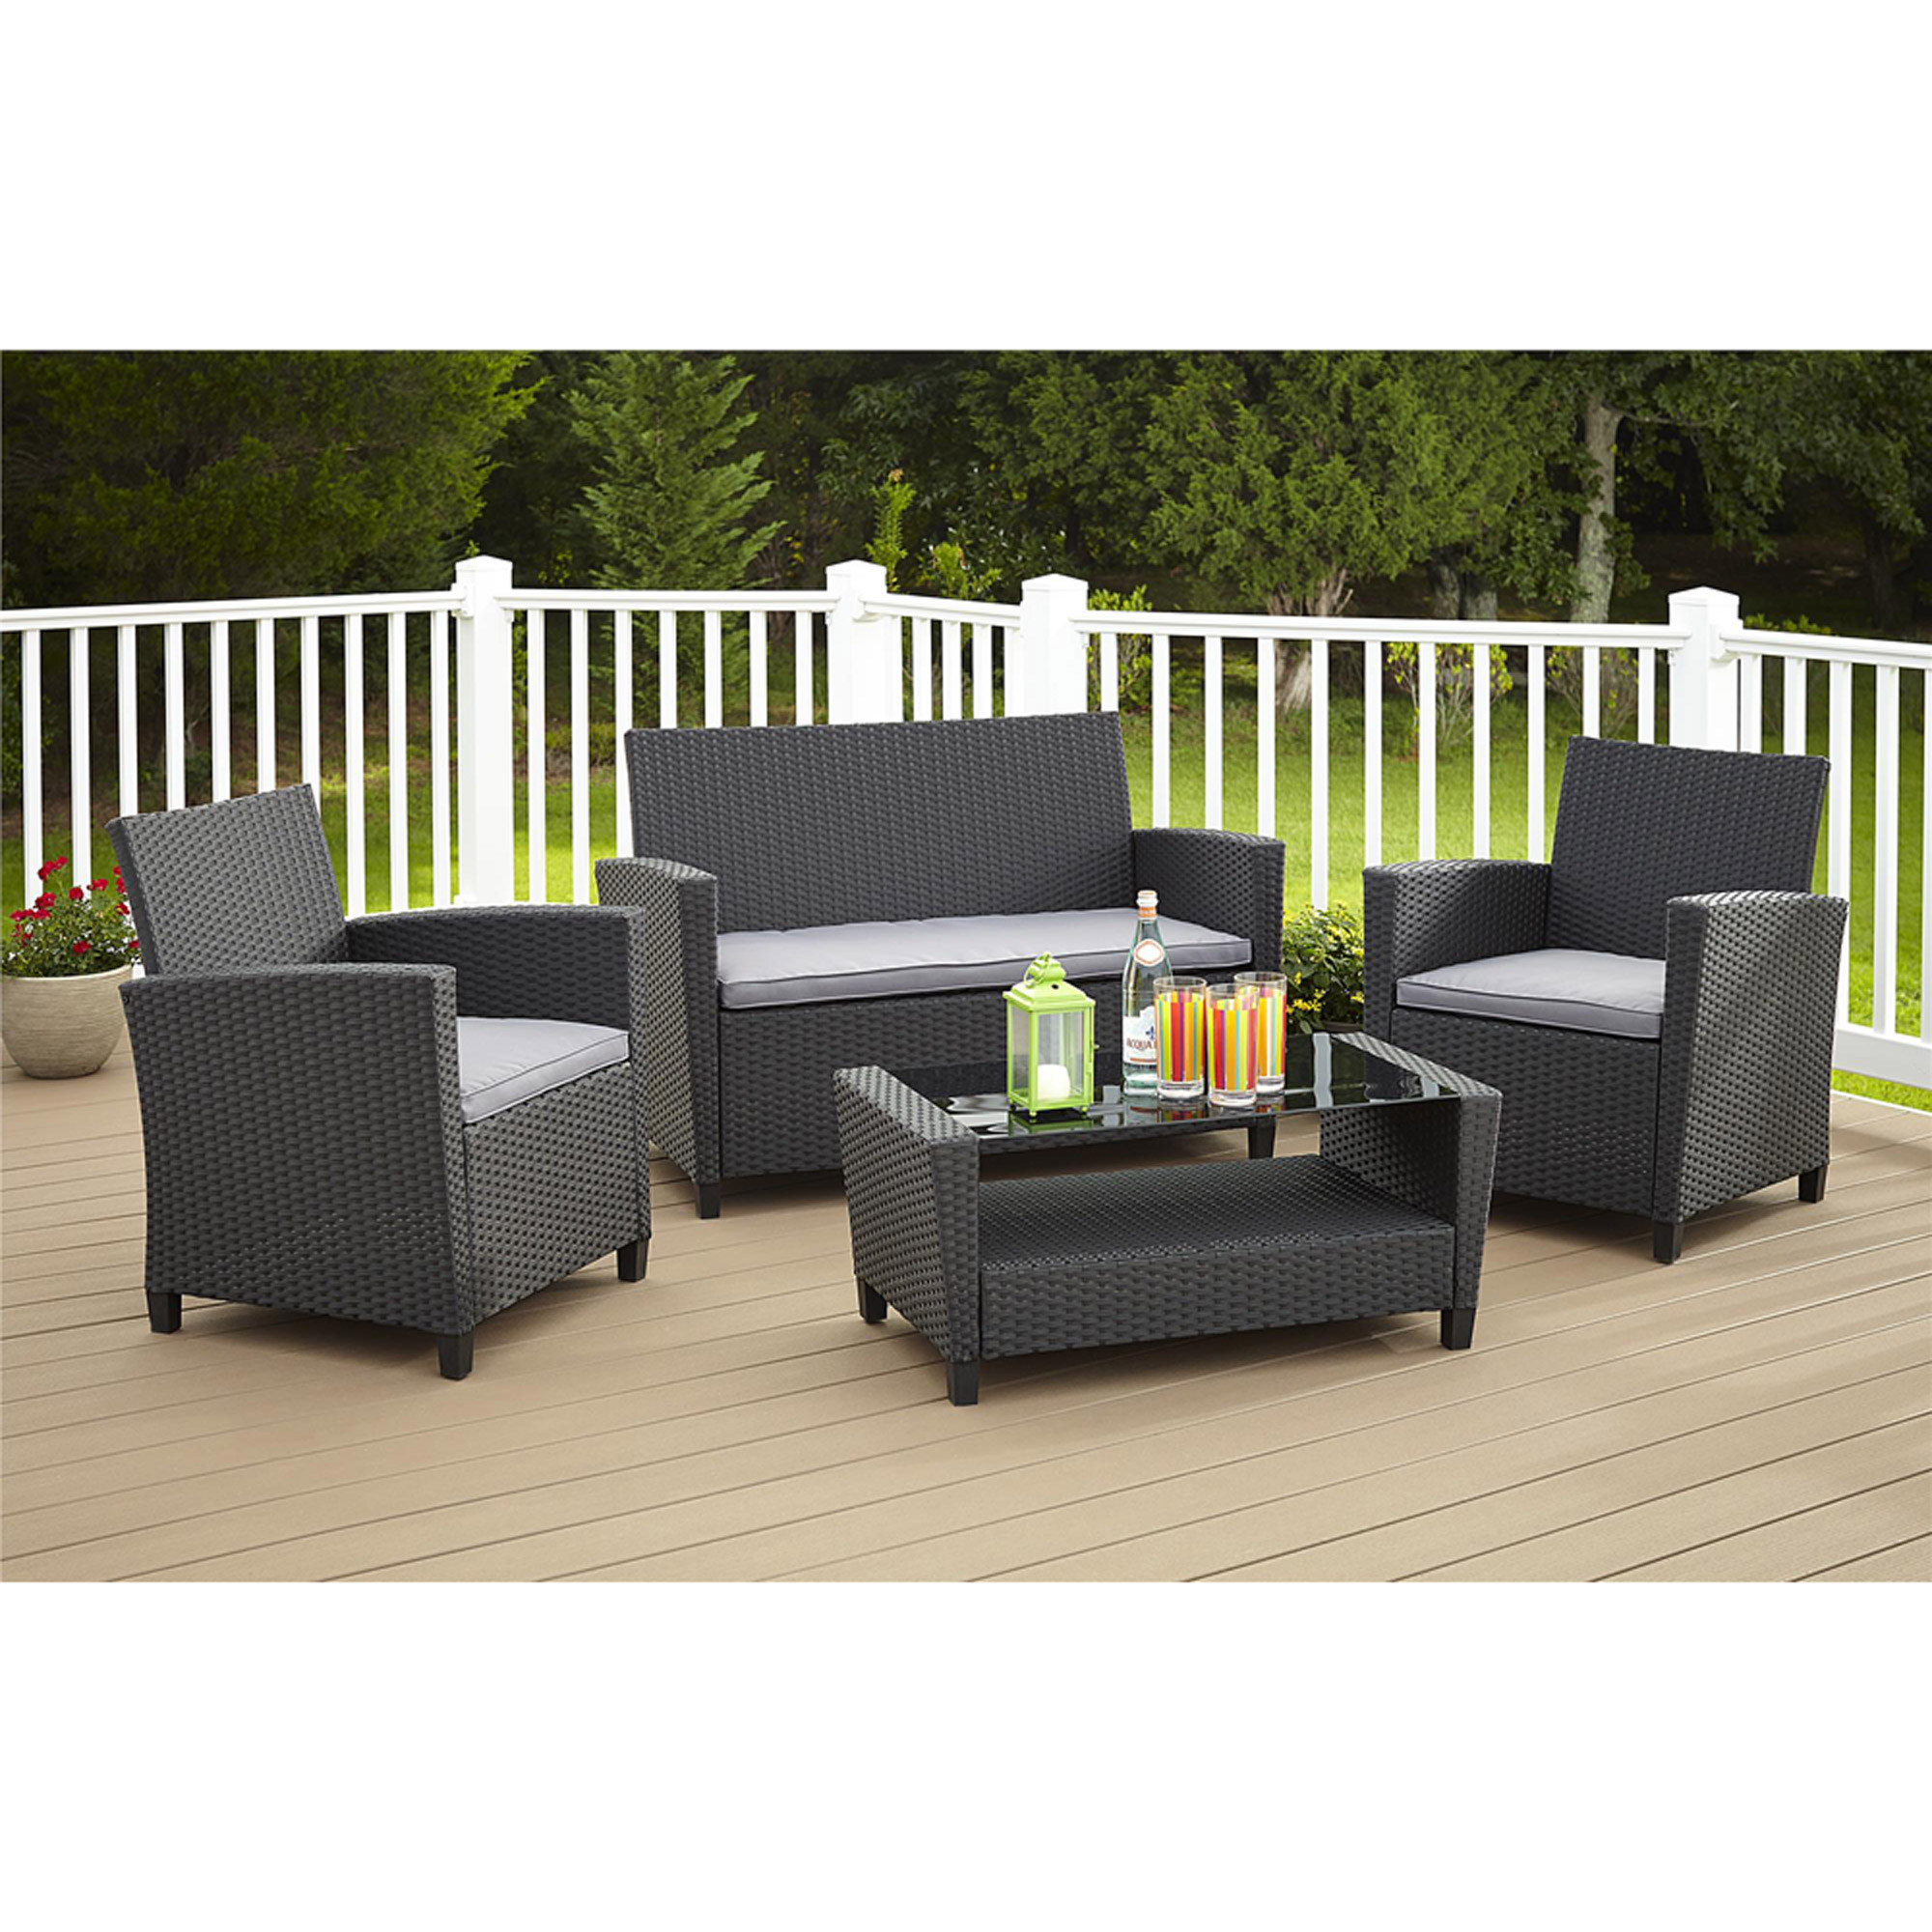 Cosco Outdoor Malmo 4-Piece Resin Wicker Patio Conversation Set